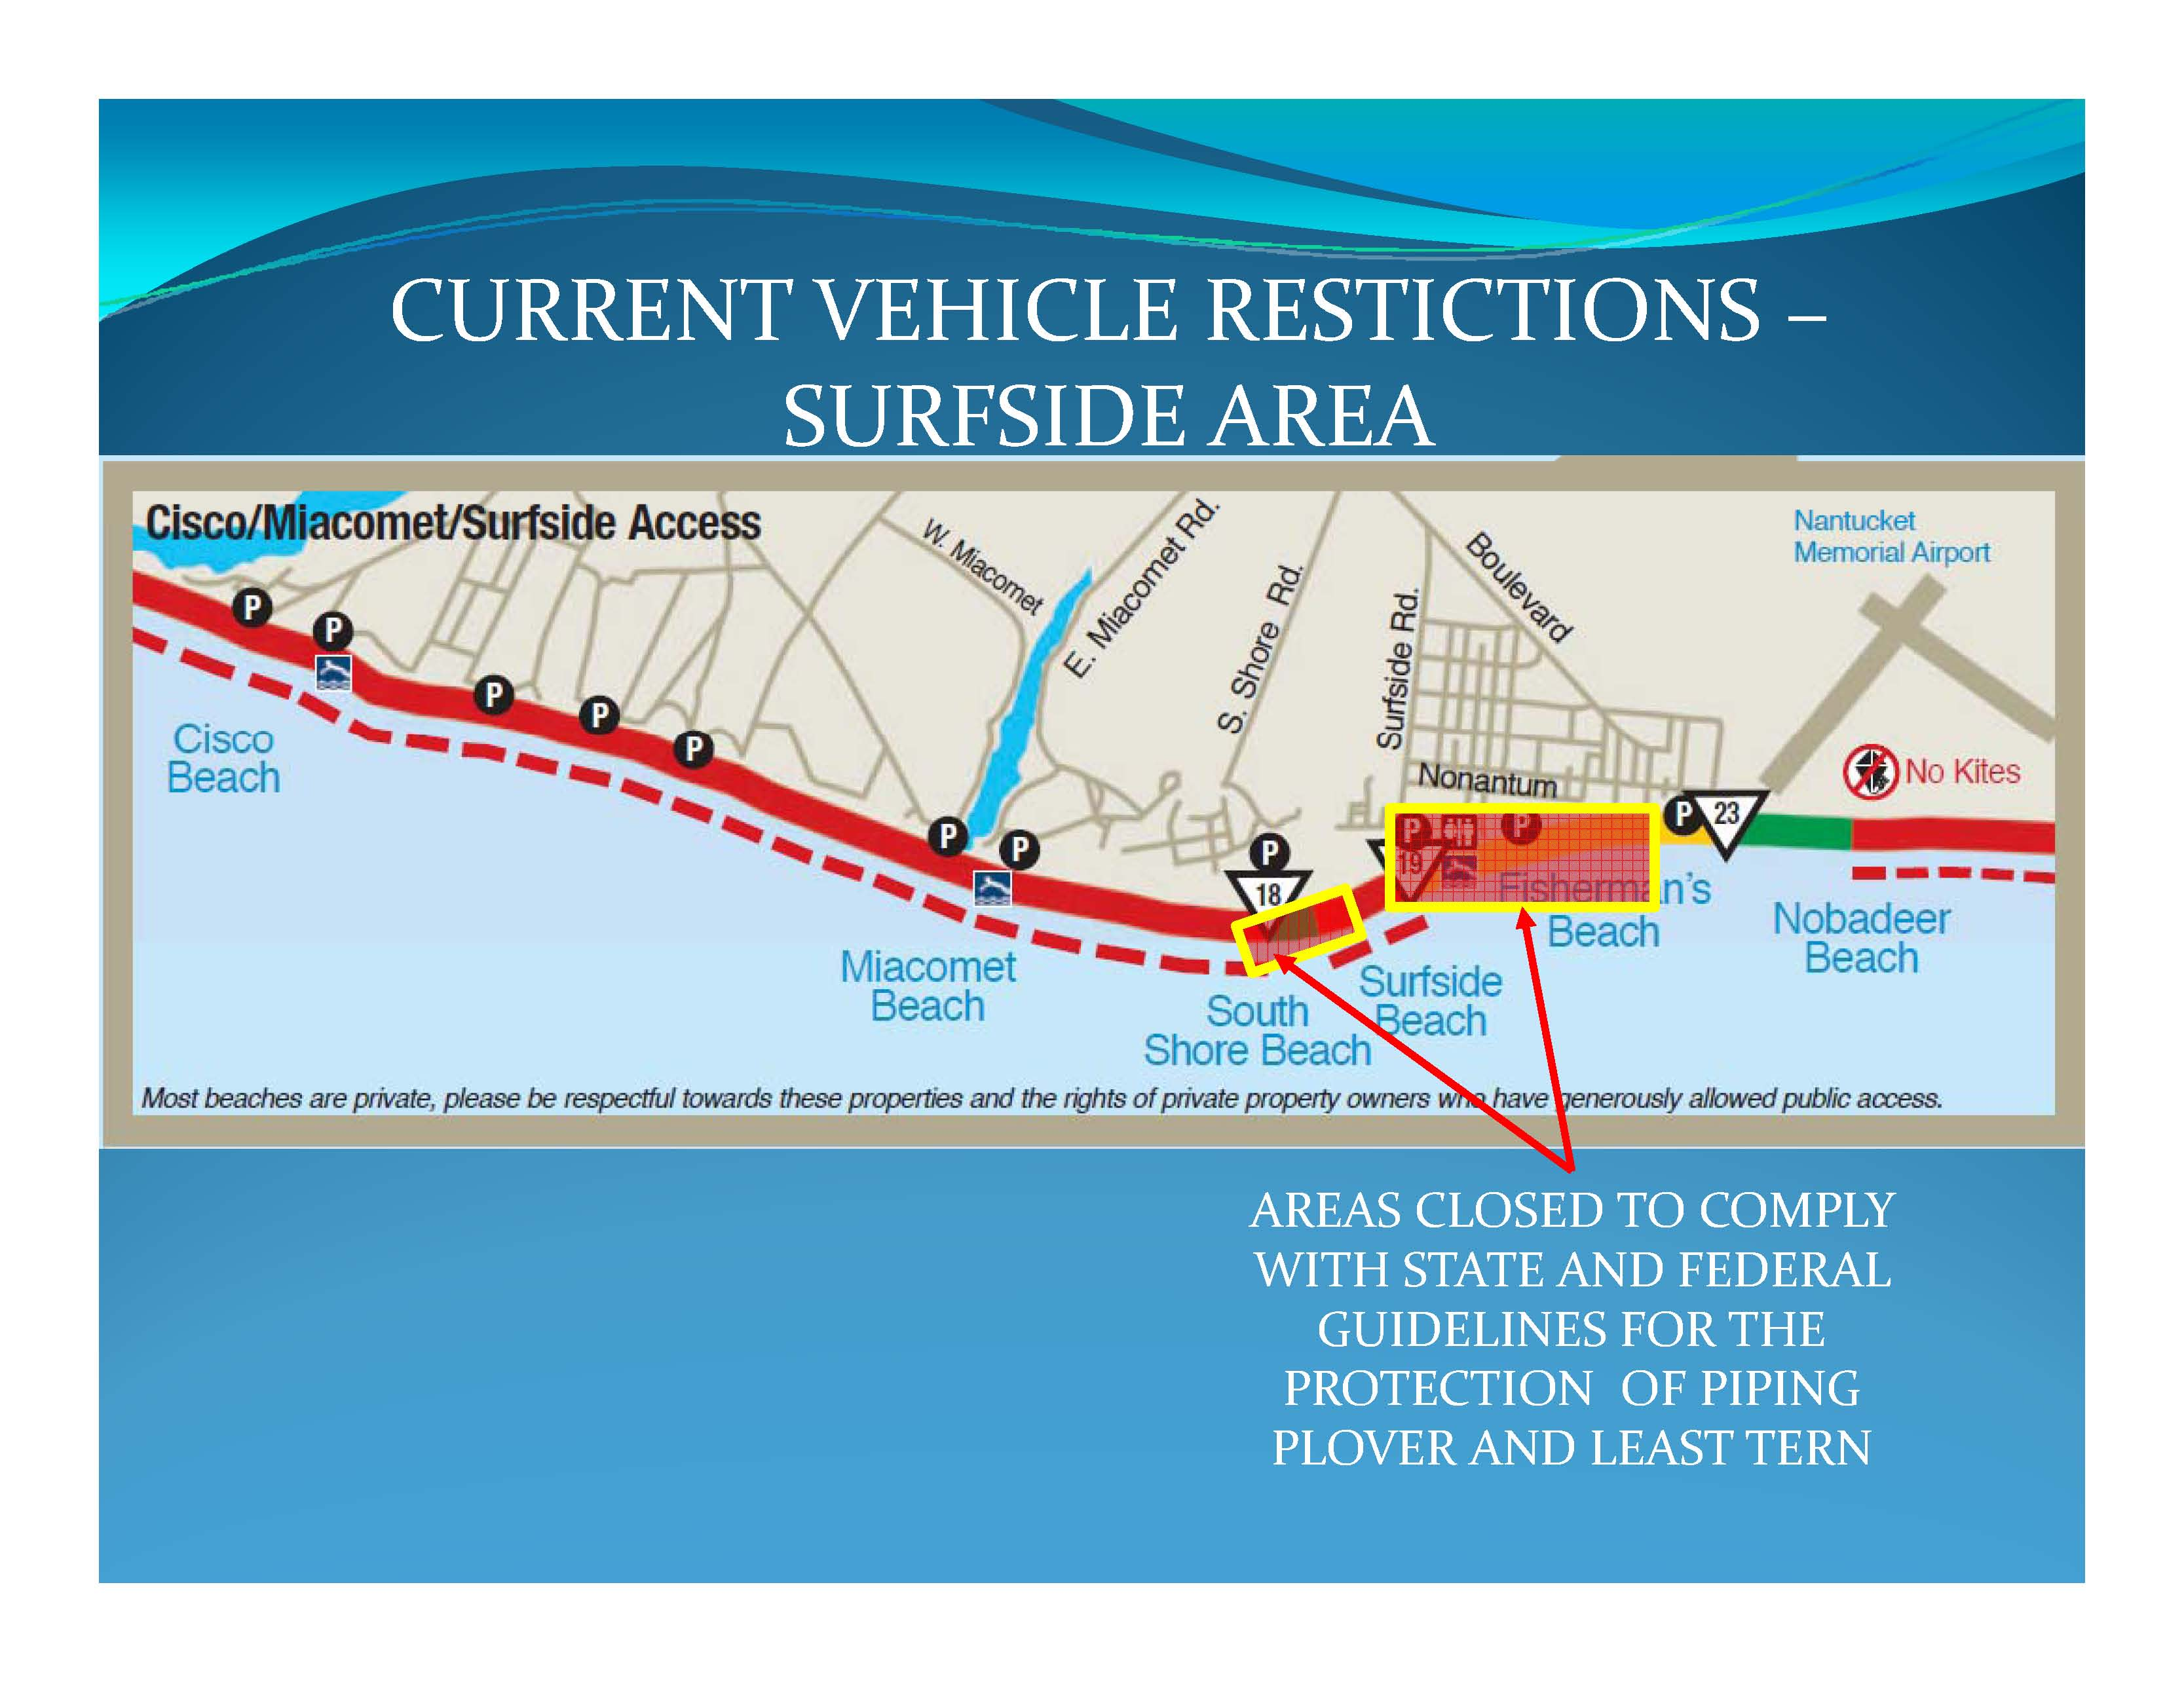 vehicle restrictions 5-28-2014 surfside area